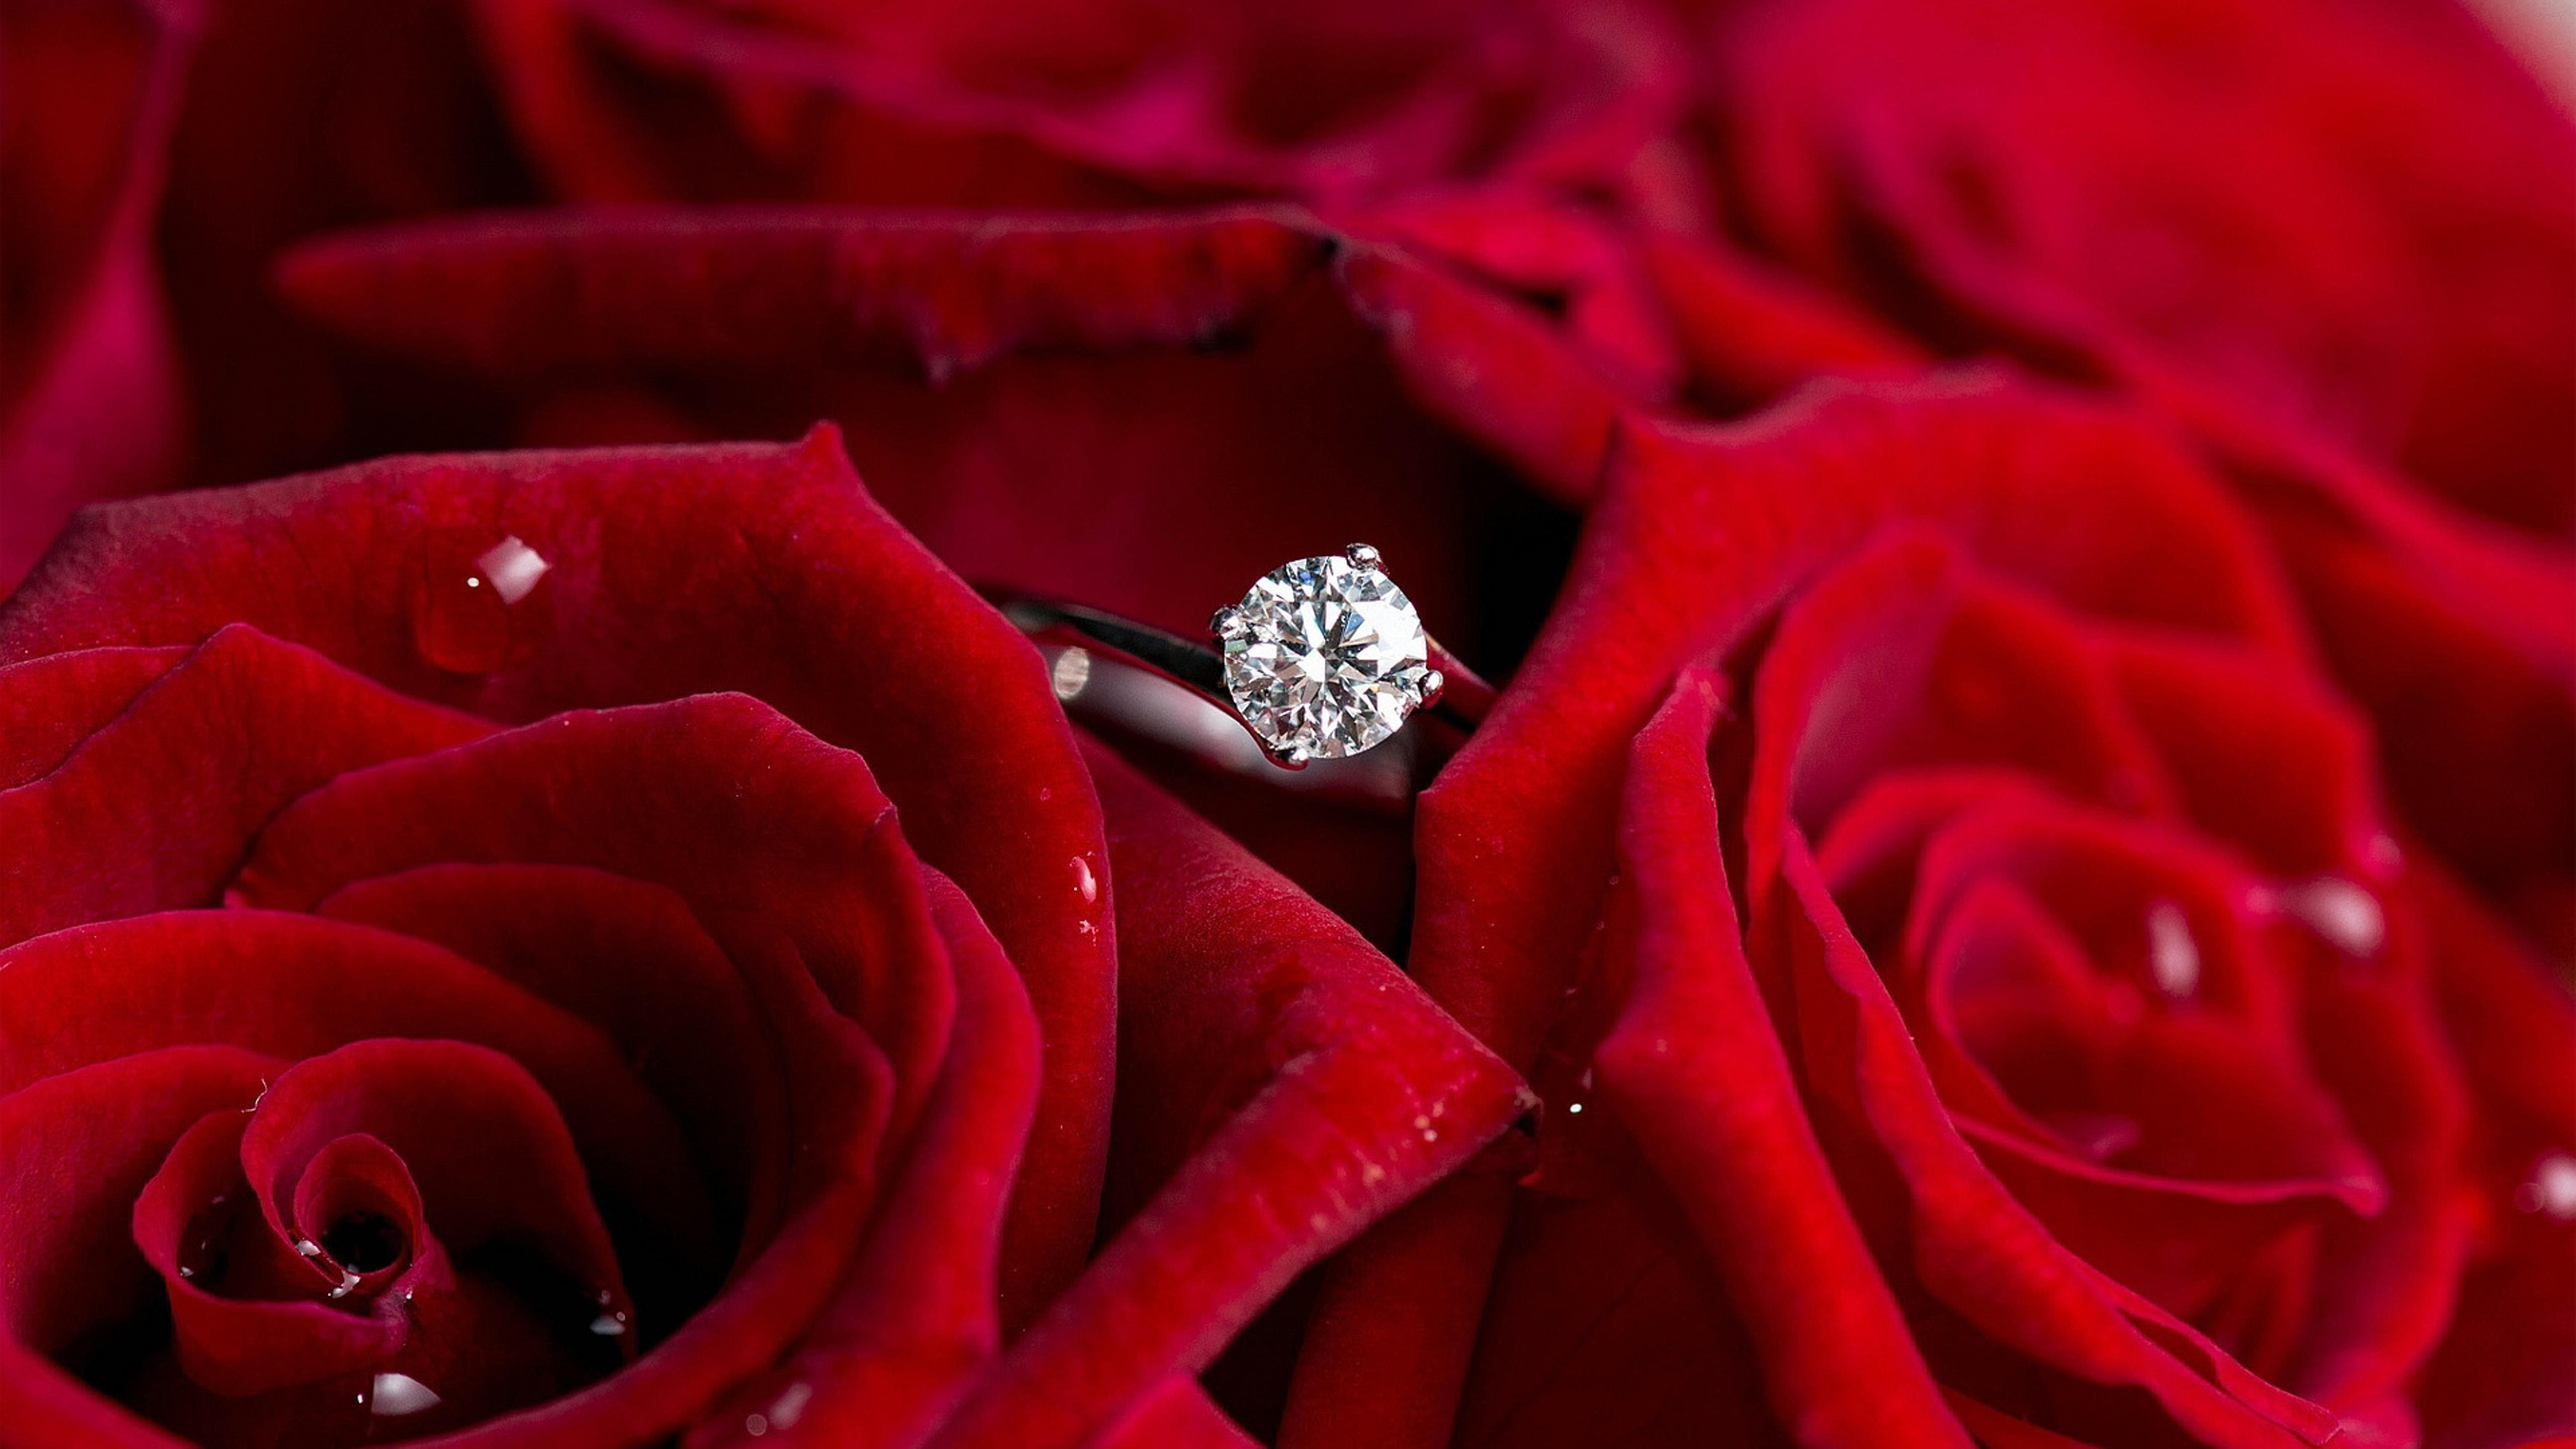 Download Wallpaper 5120x2880 Silver Ring For Marriage And Beautiful Red Roses